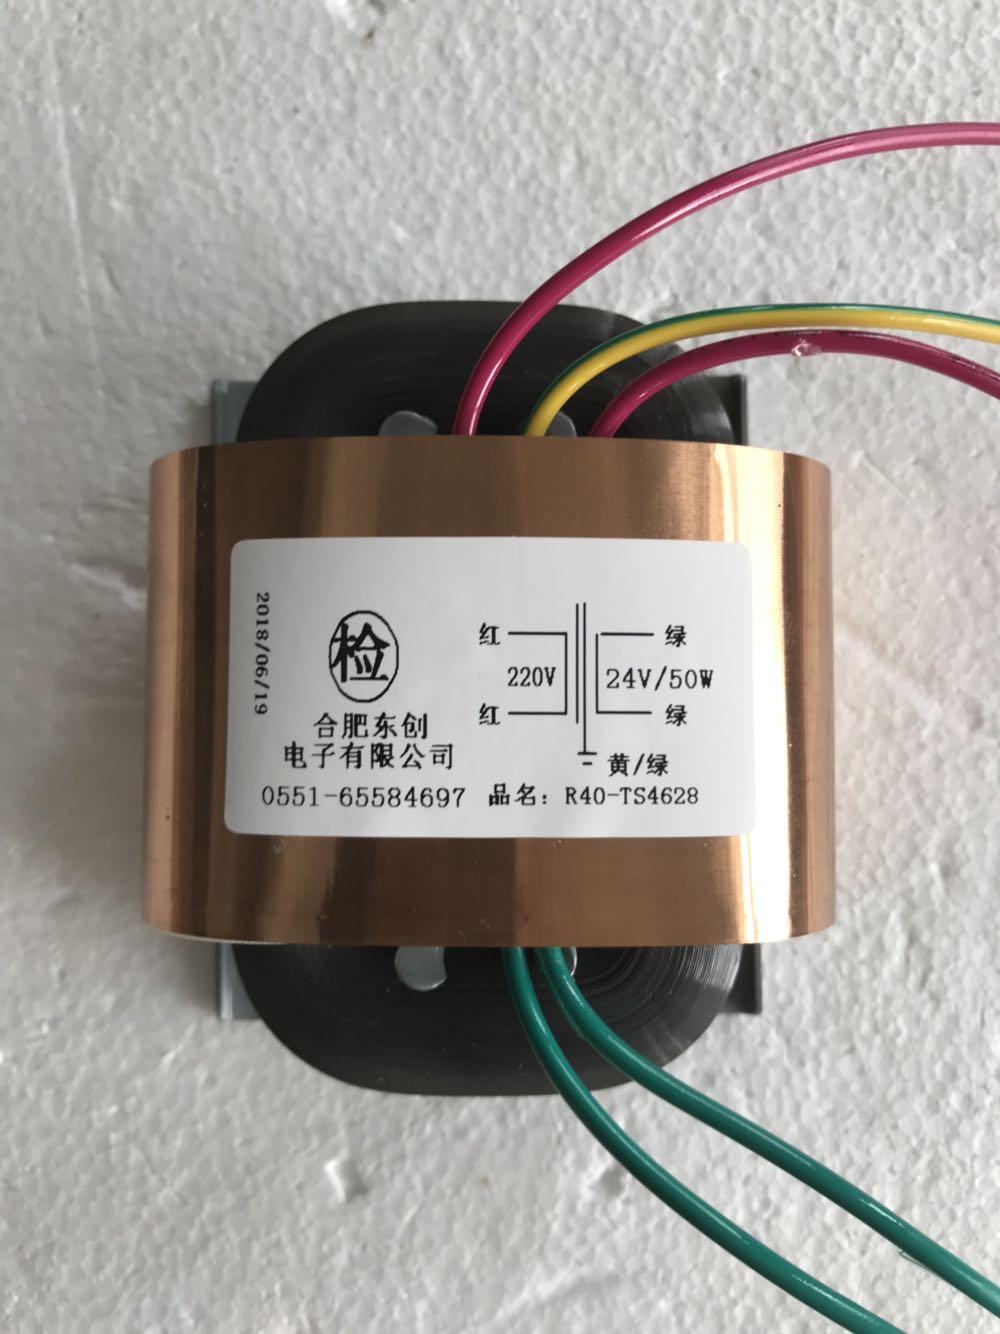 24V 2.08A R Core Transformer 50VA R40 custom transformer 220V copper shield Power amplifier24V 2.08A R Core Transformer 50VA R40 custom transformer 220V copper shield Power amplifier